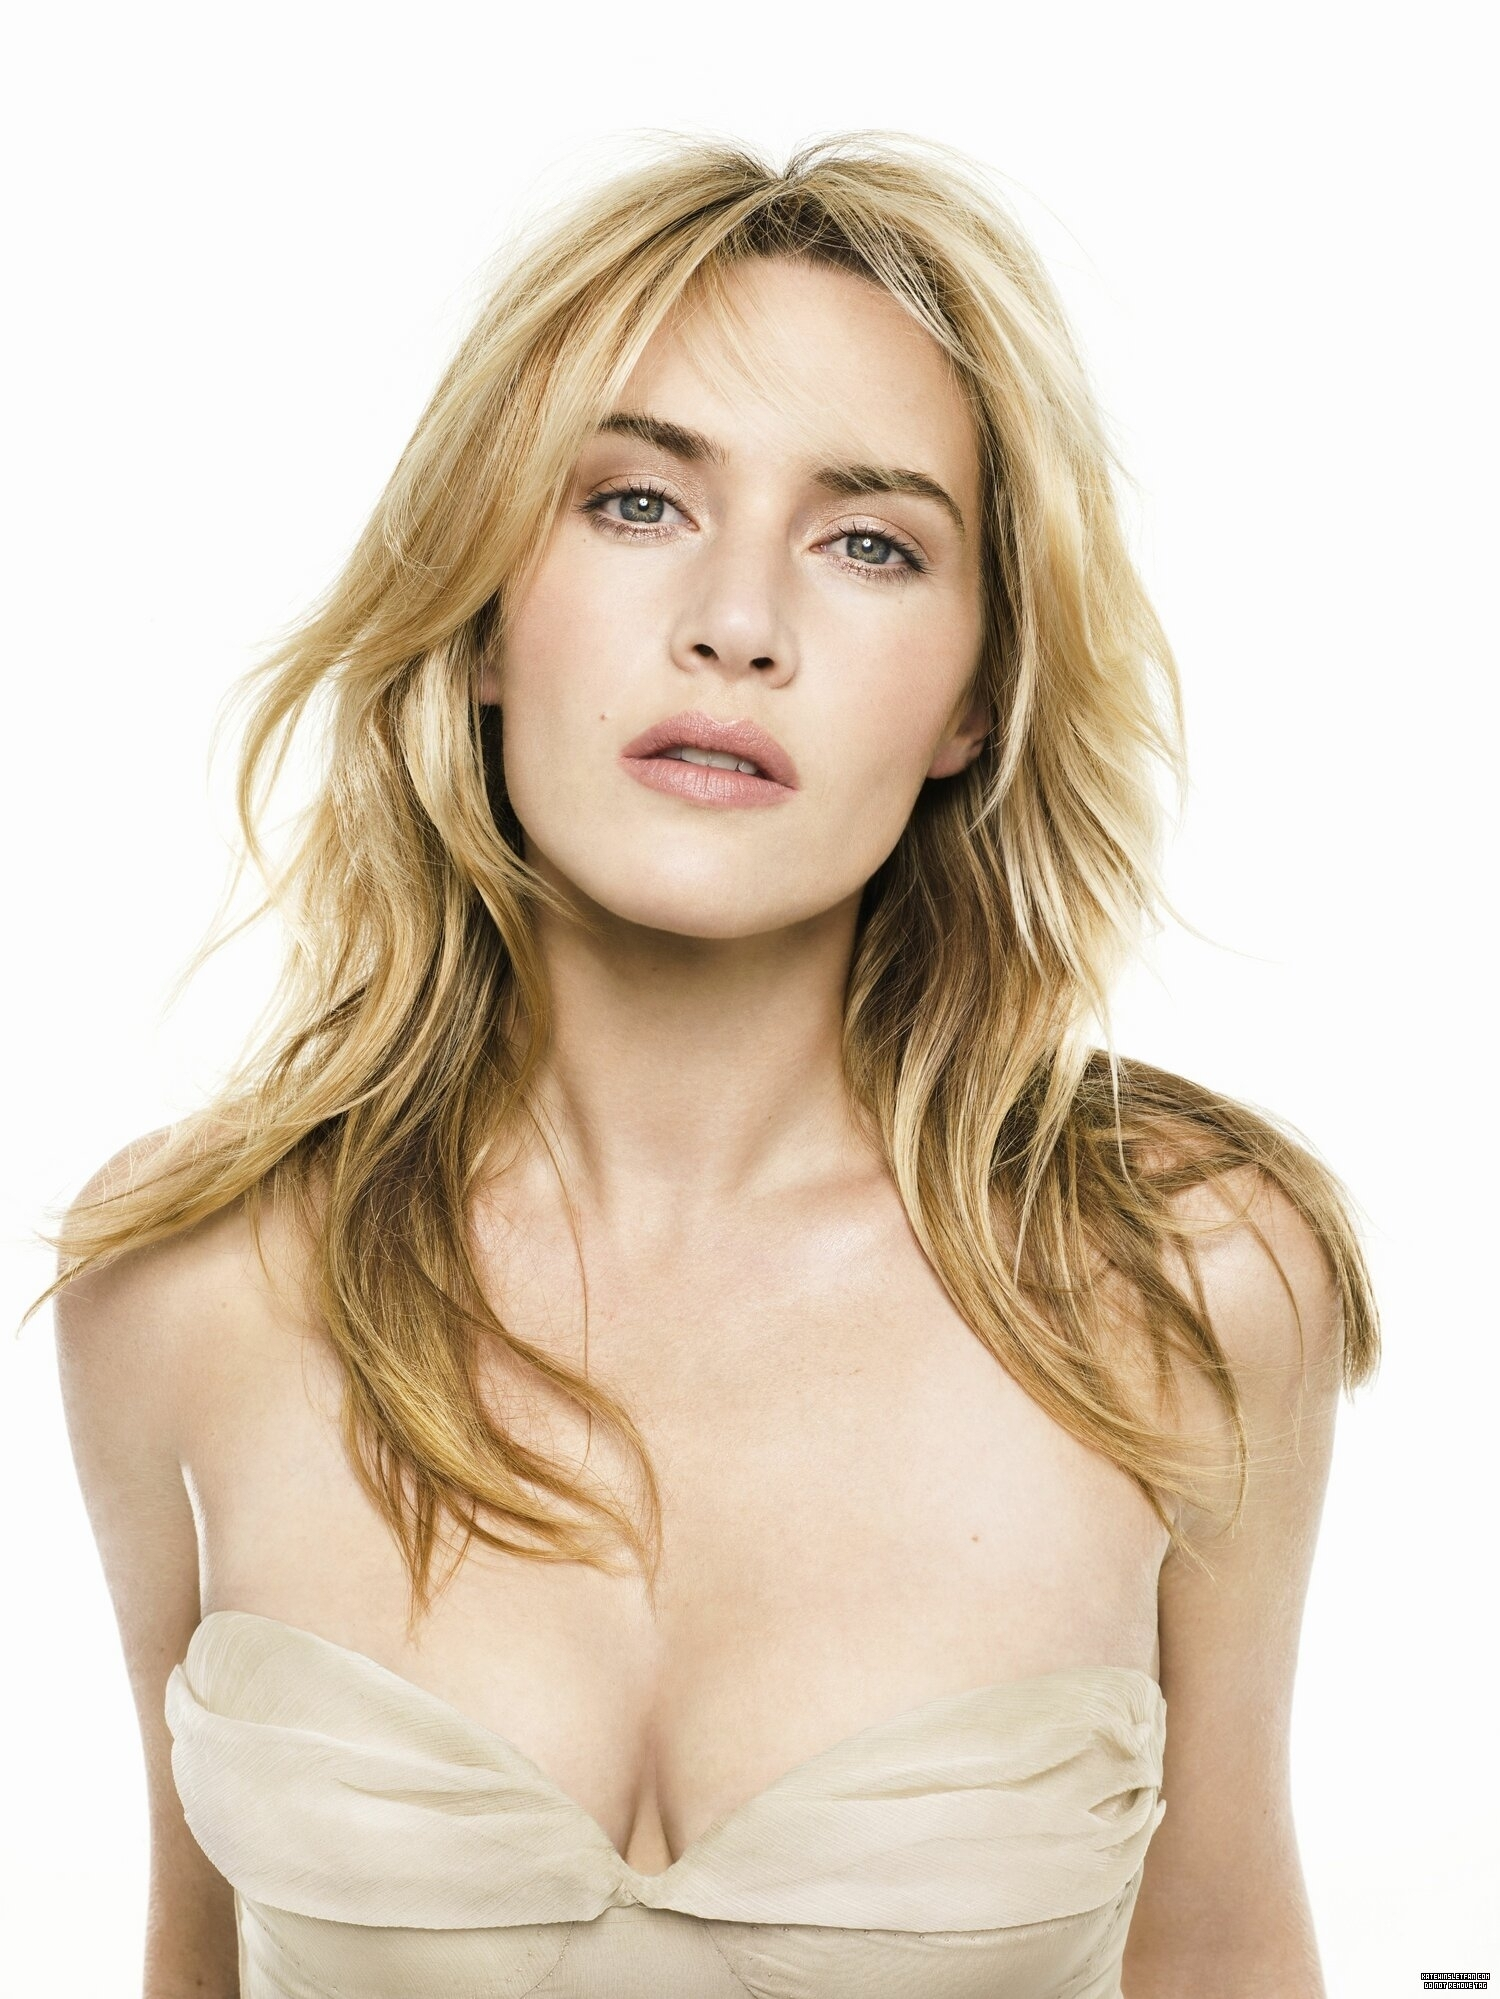 Photoshoot Kate Winslet Photo 16299177 Fanpop